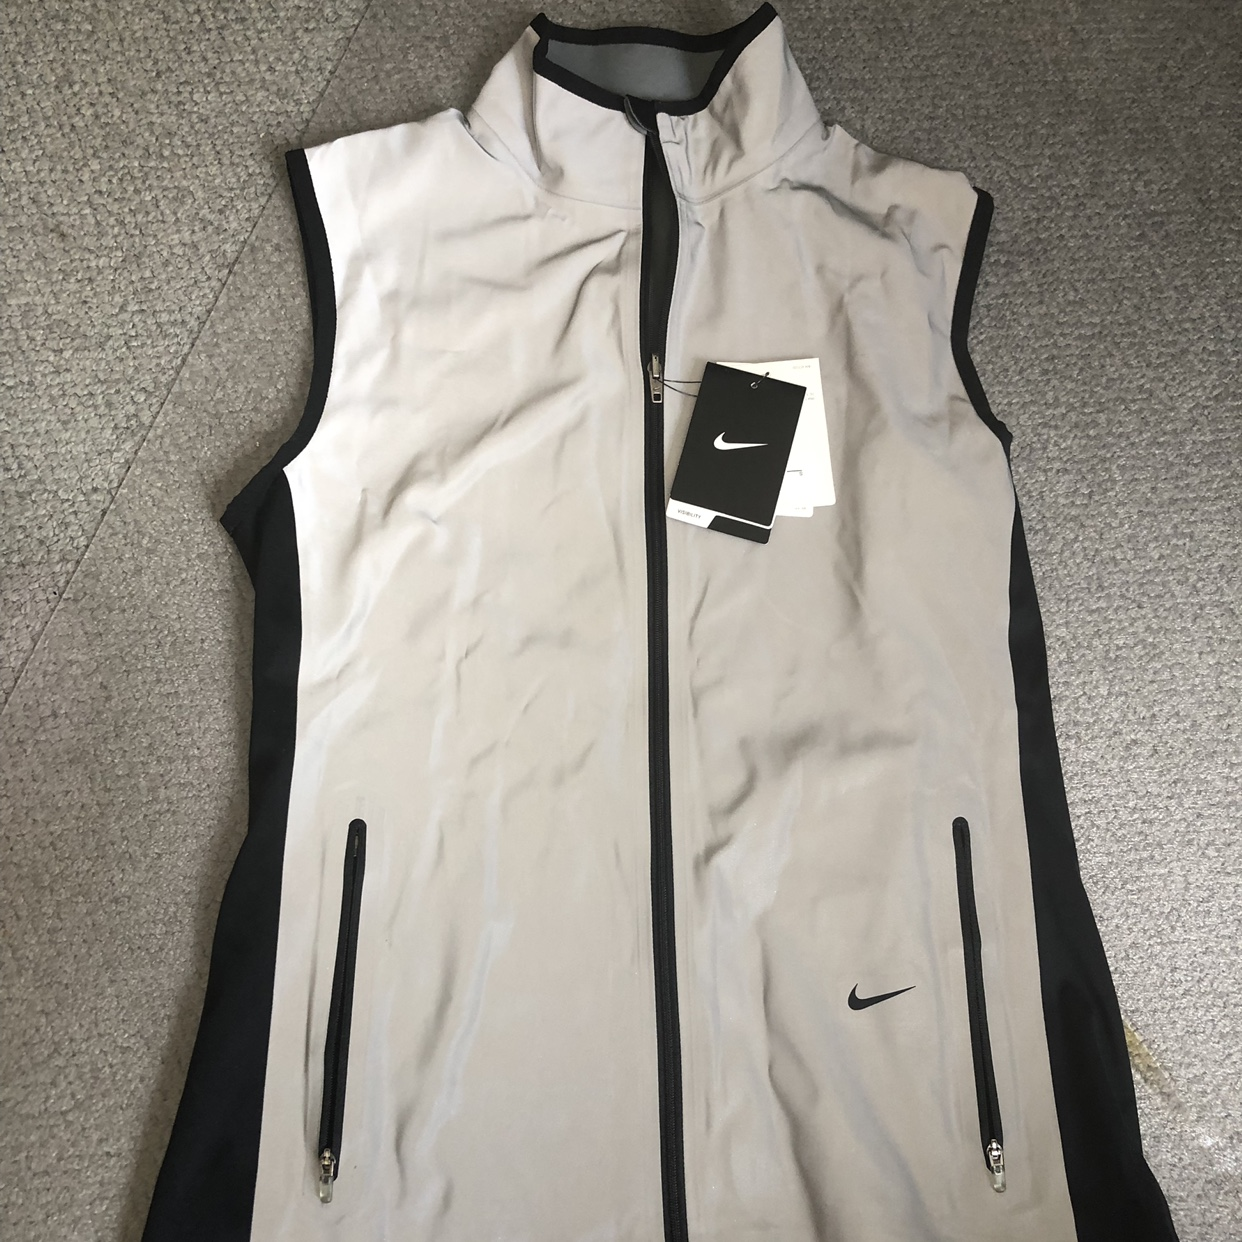 Women's Nike Reflective Vest with Flash Vapor in Depop